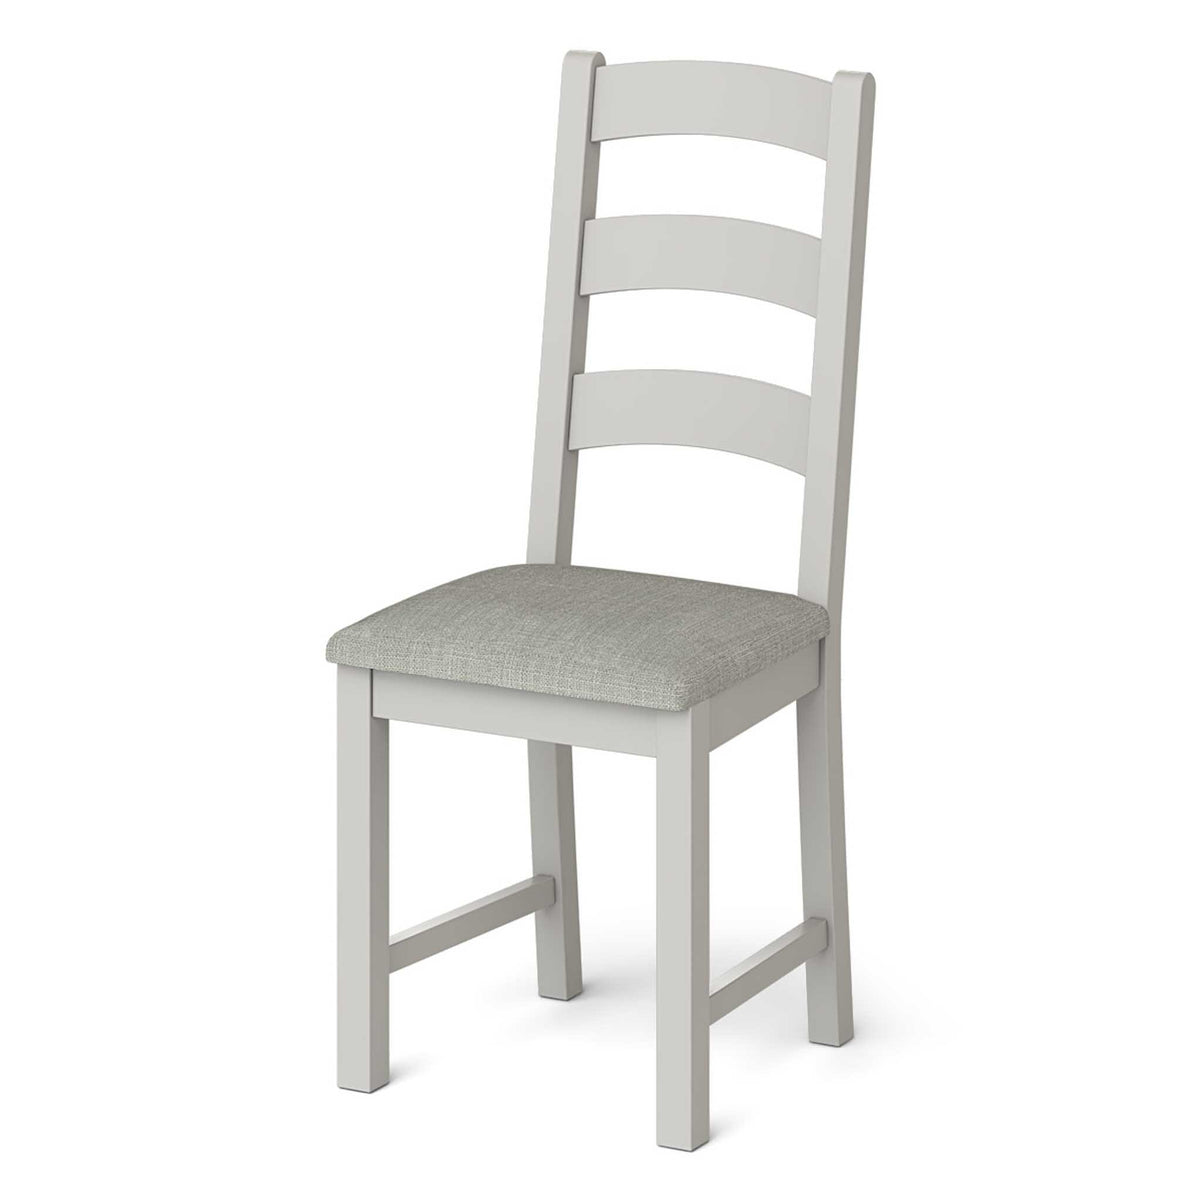 Lundy Grey Ladder Back Dining Chair - Side view